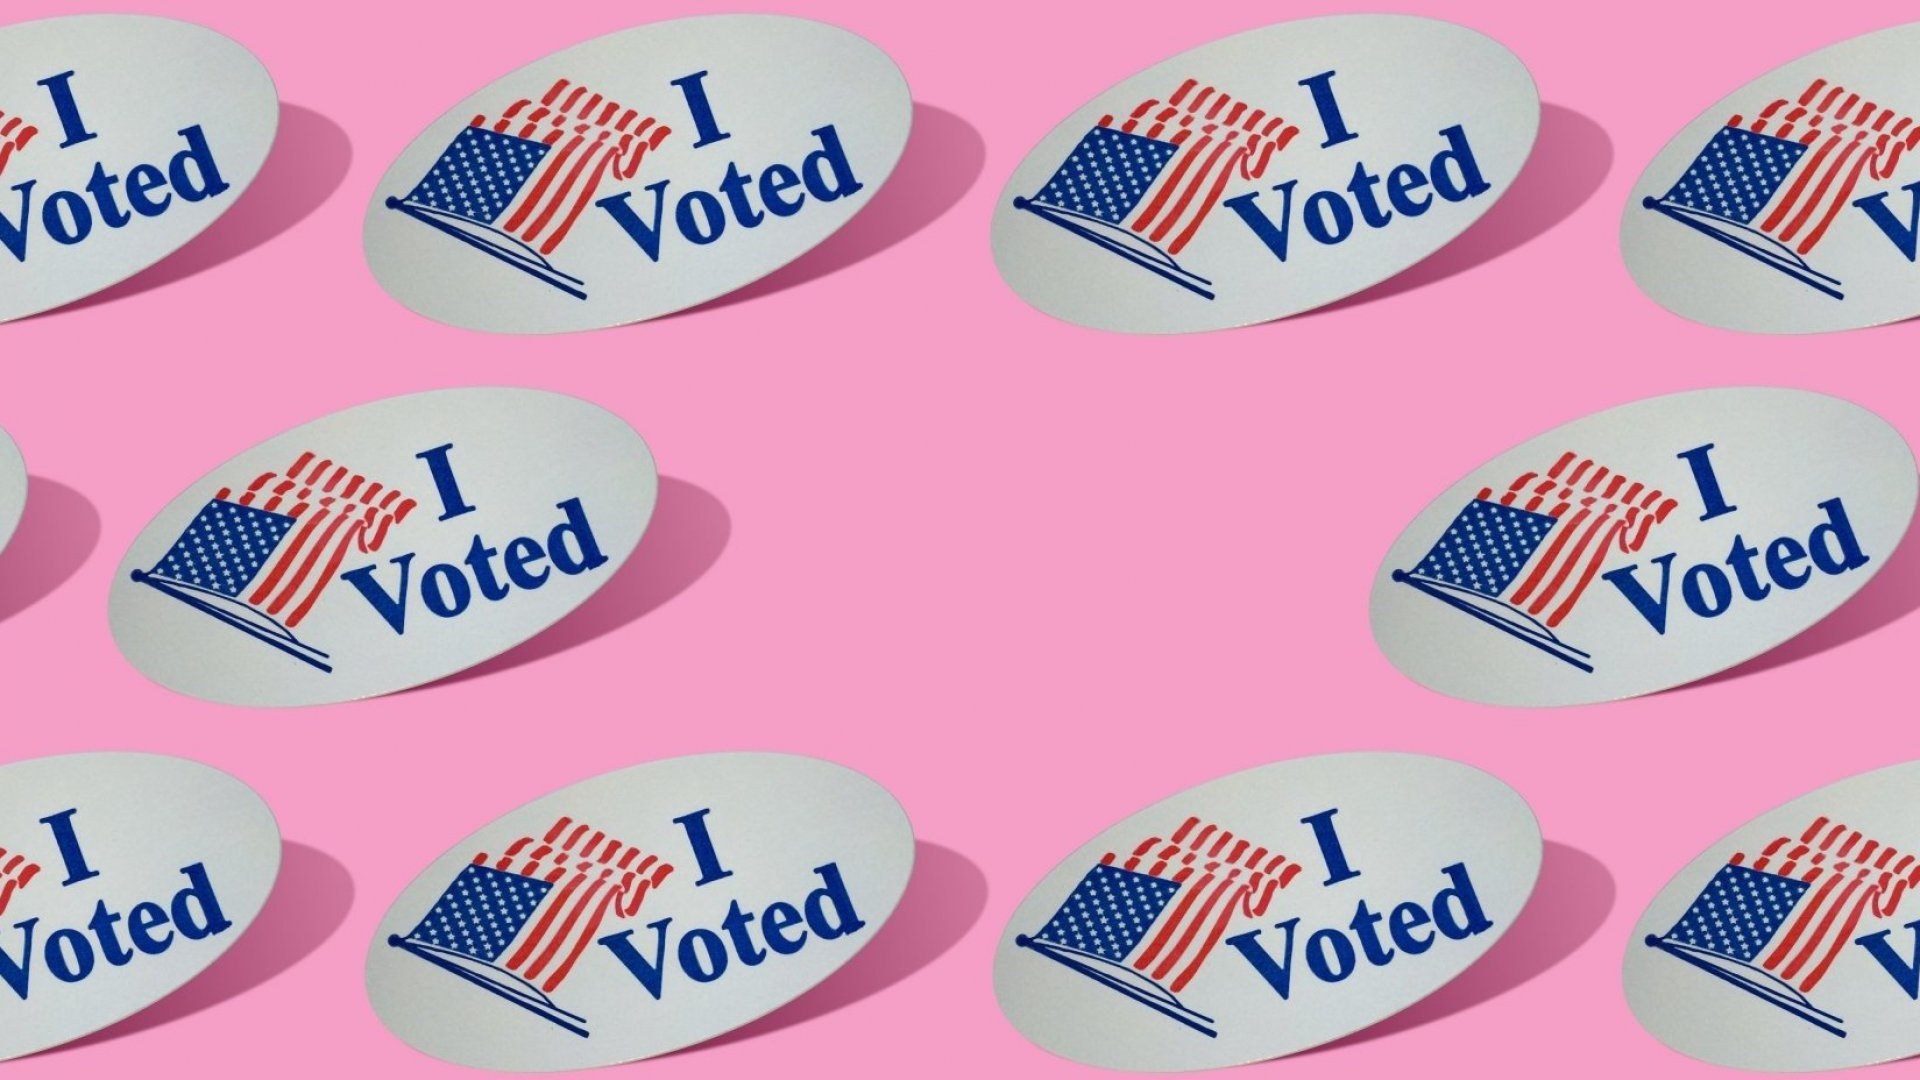 It's National Voter Registration Day and These 3 Major Companies Are Marketing It in Incredible Ways